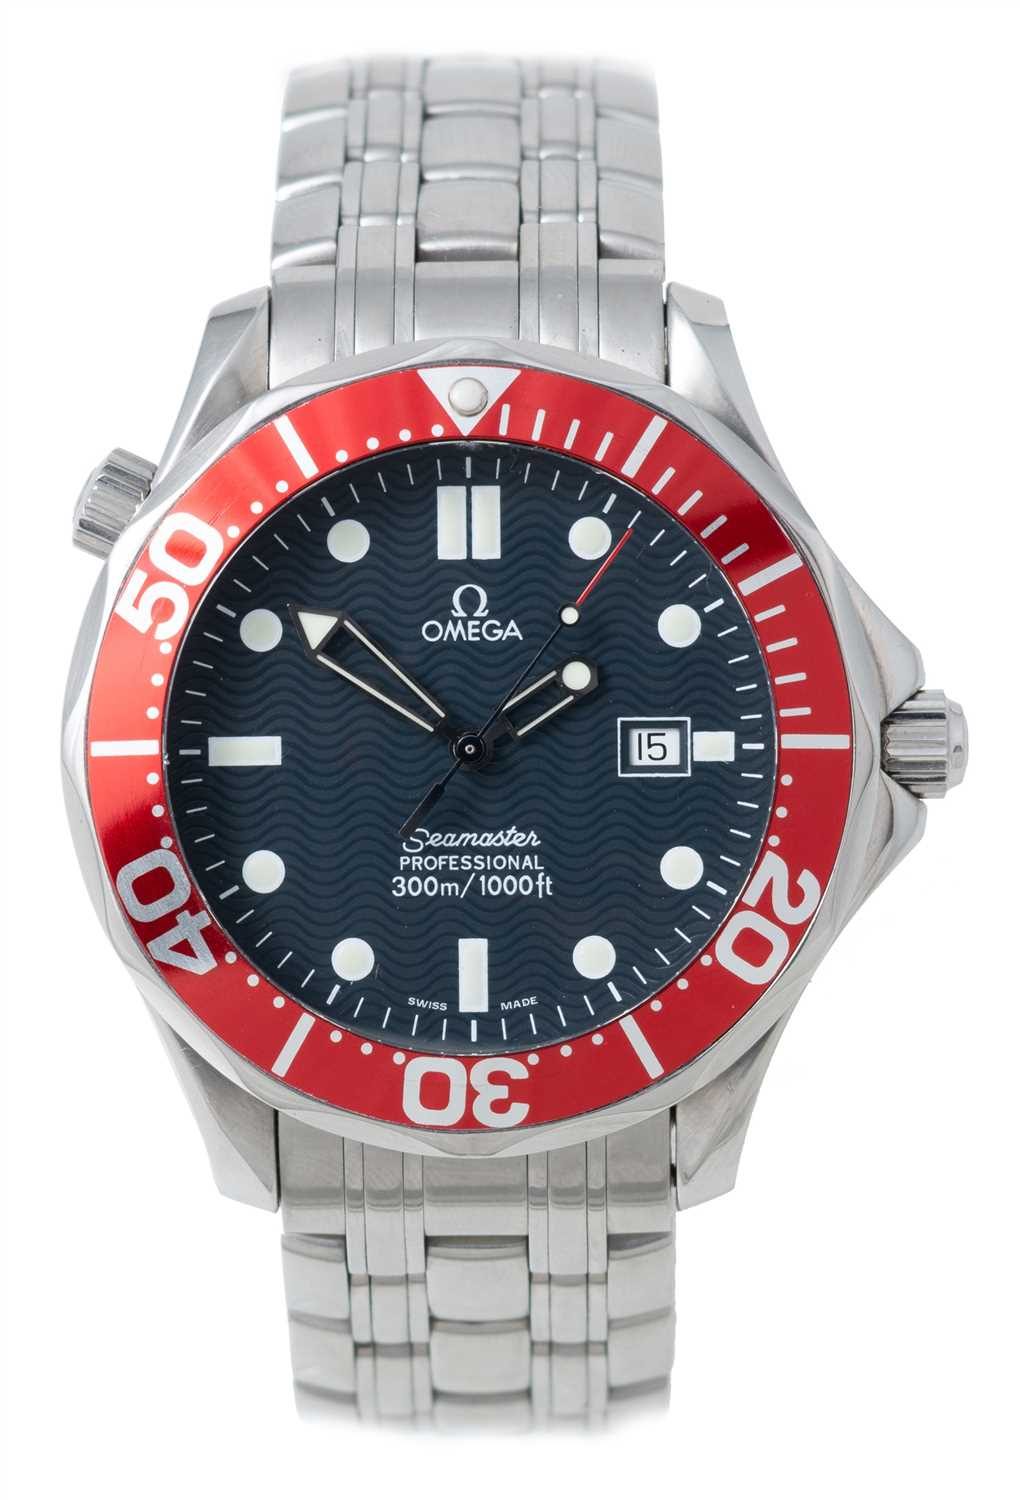 304 - Omega - A gentleman's Seamaster Professional 300m